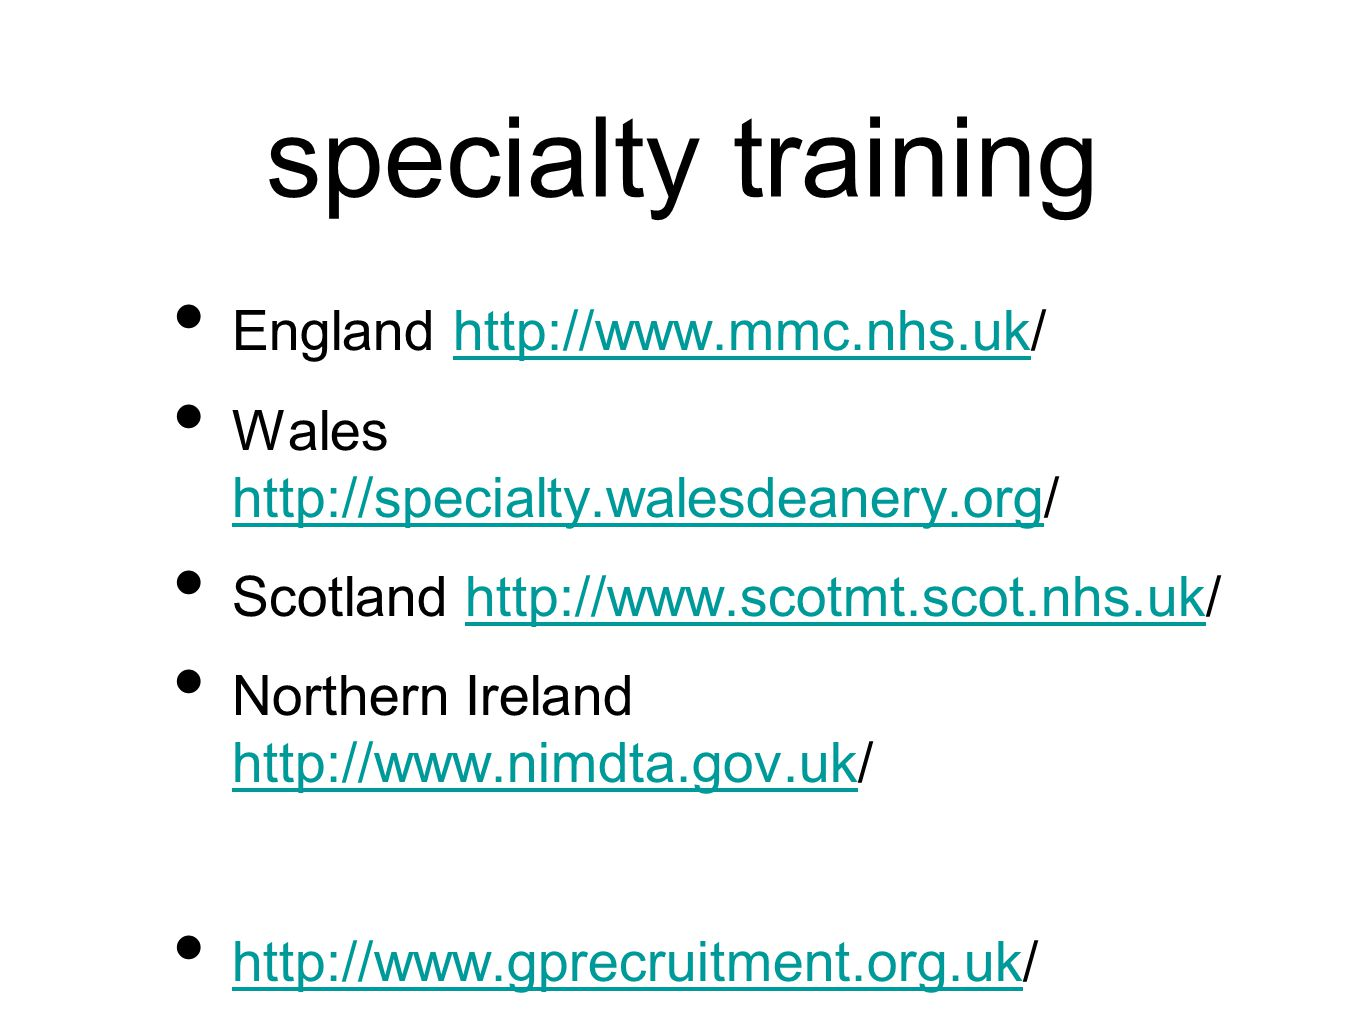 specialty training England http://www.mmc.nhs.uk/http://www.mmc.nhs.uk Wales http://specialty.walesdeanery.org/ http://specialty.walesdeanery.org Scotland http://www.scotmt.scot.nhs.uk/http://www.scotmt.scot.nhs.uk Northern Ireland http://www.nimdta.gov.uk/ http://www.nimdta.gov.uk http://www.gprecruitment.org.uk/ http://www.gprecruitment.org.uk